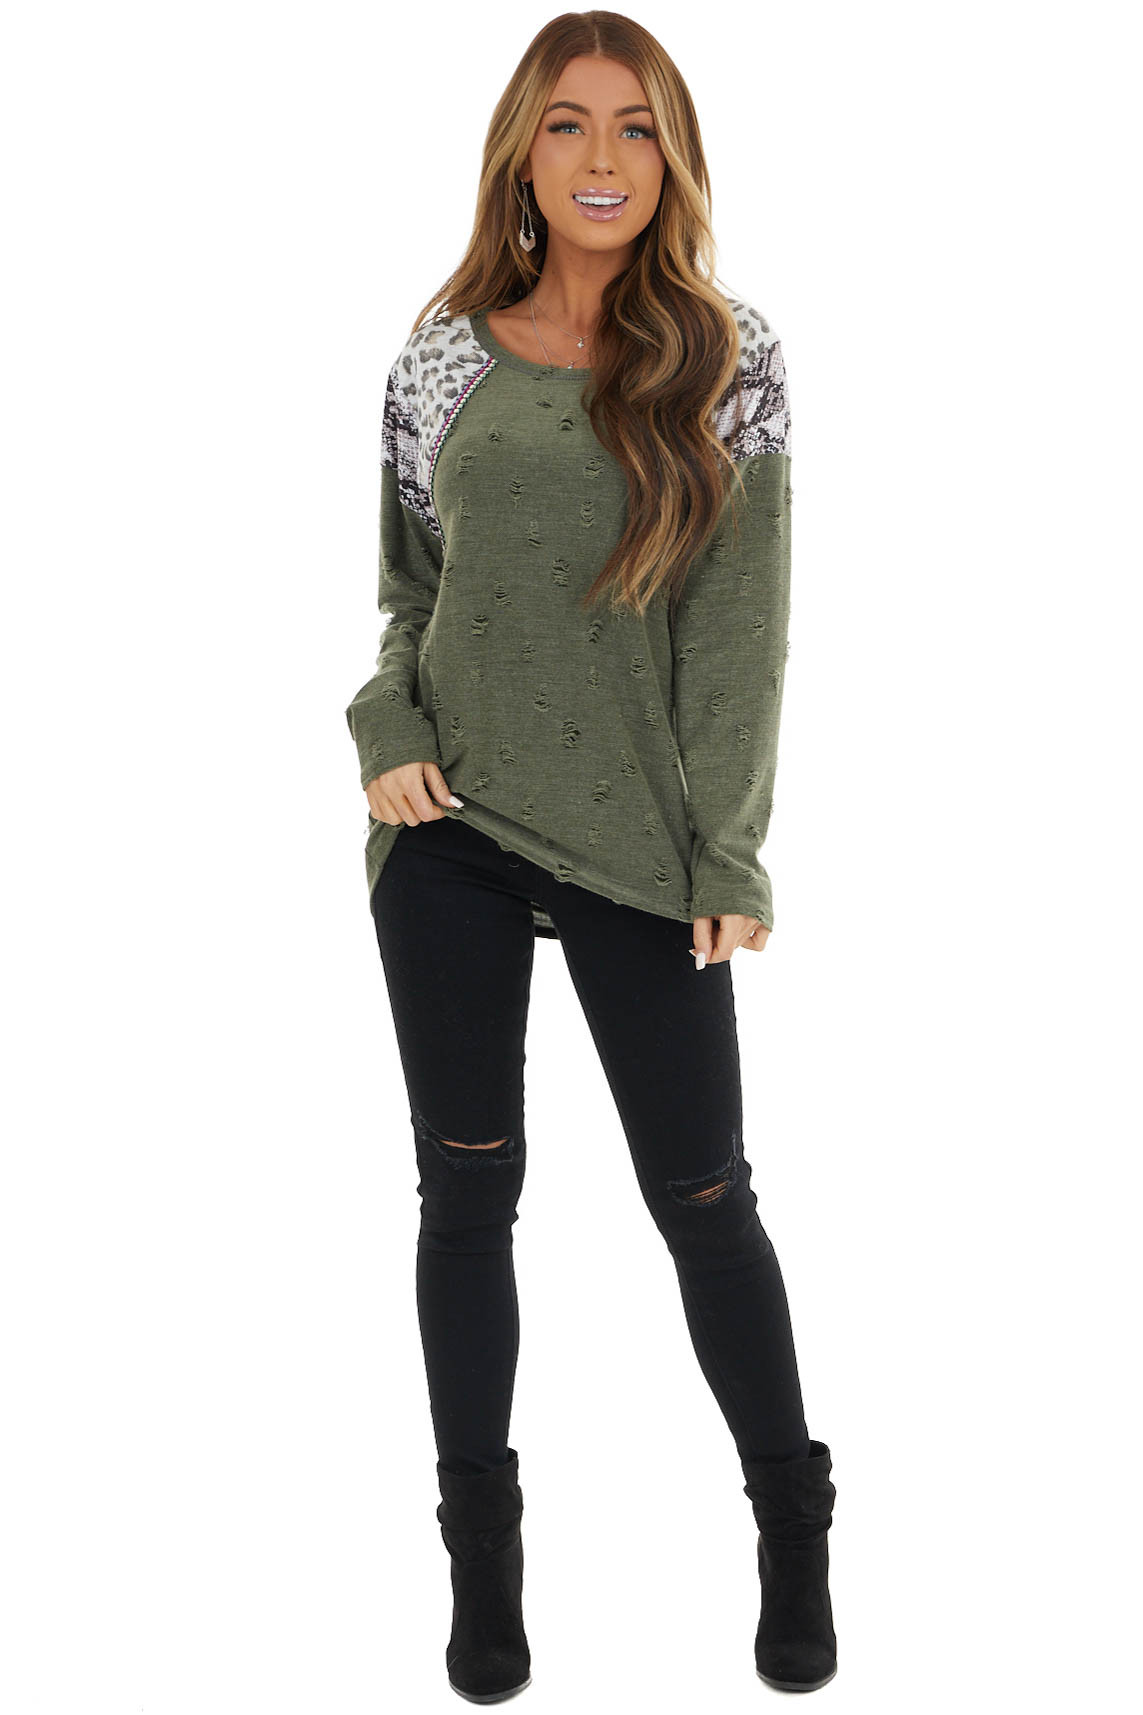 Olive Distressed Top with Leopard and Snake Print